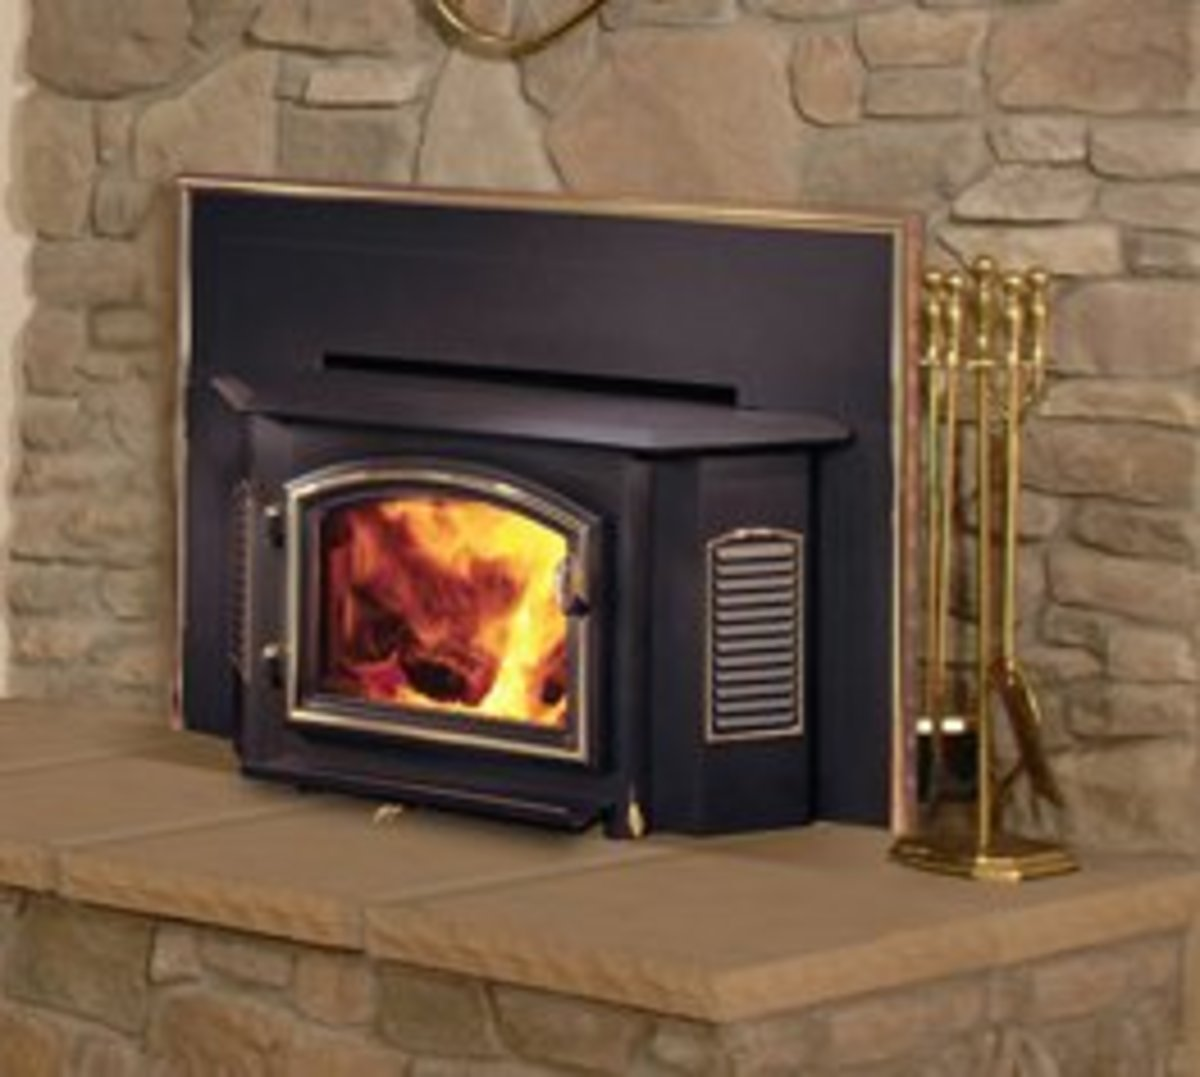 What To Know Before You Buy A Wood Stove Or Pellet Stove Dengarden Home And Garden